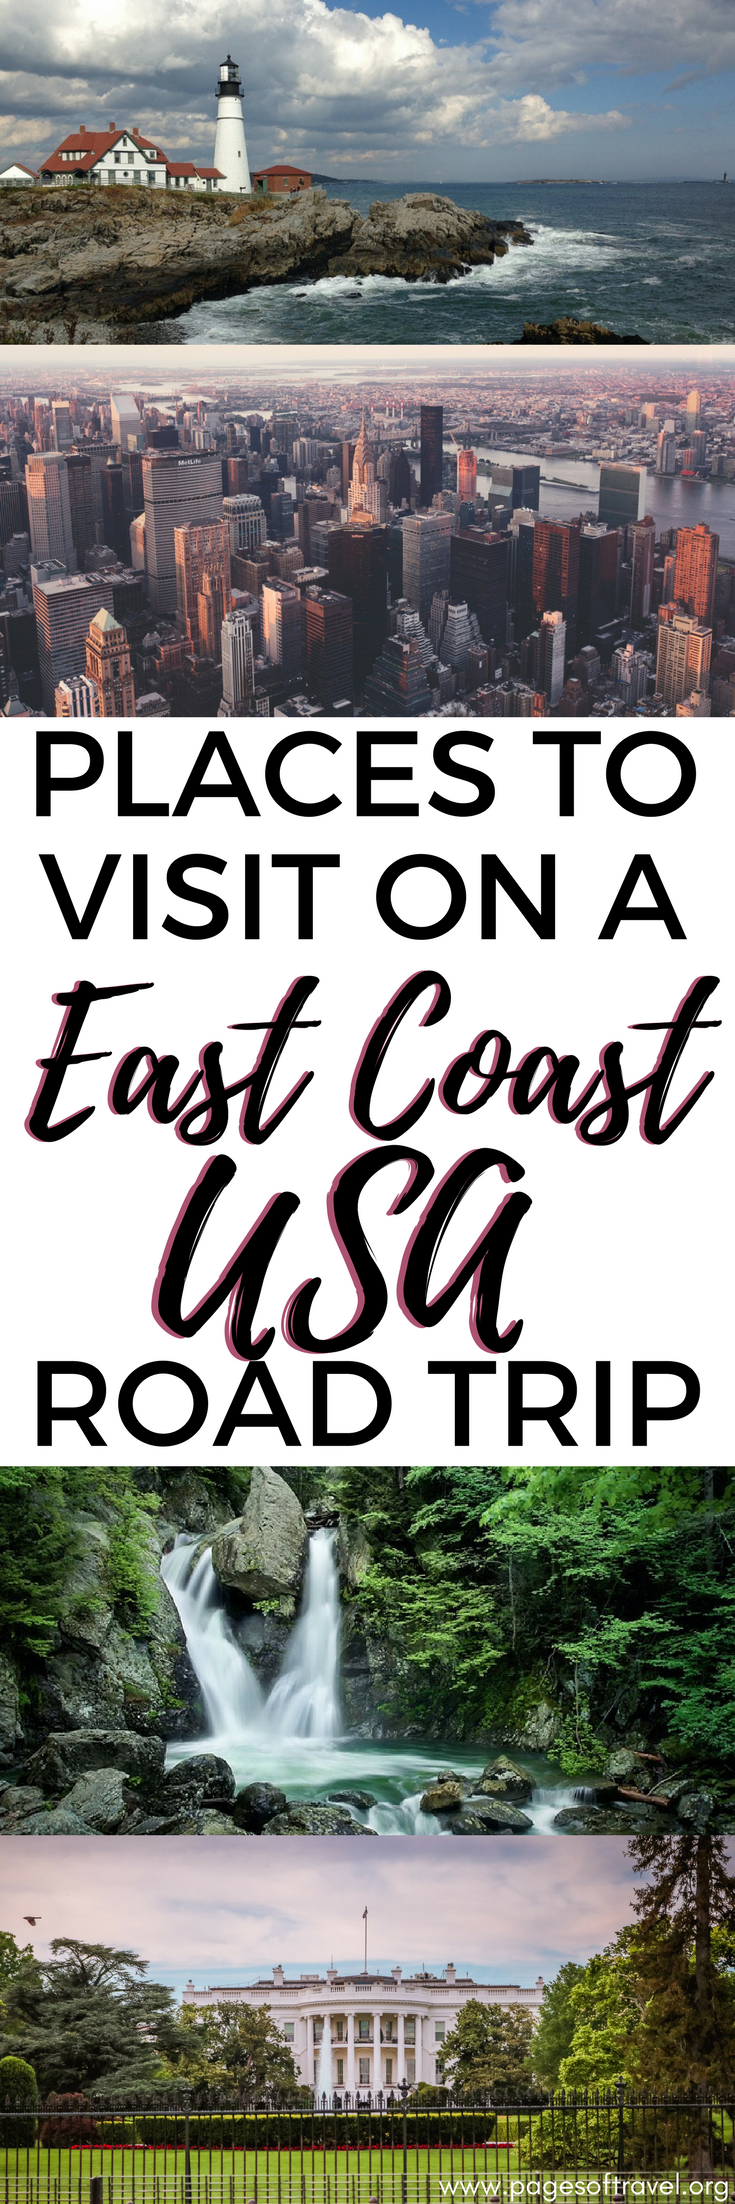 Budget-Friendly East Coast USA Road Trip Destinations - Pages of Travel